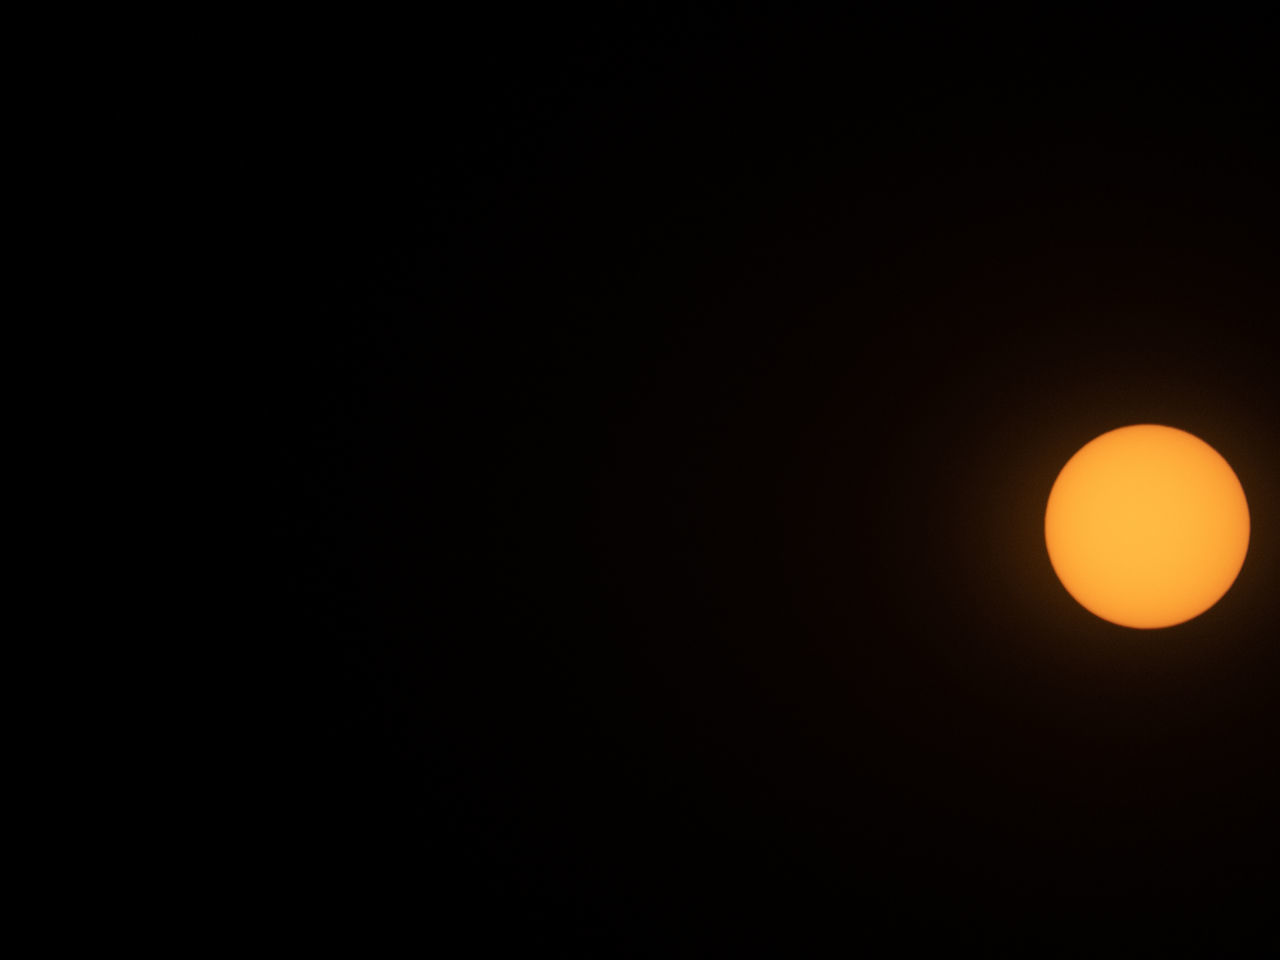 copy space, circle, space, geometric shape, sky, astronomy, orange color, beauty in nature, no people, natural phenomenon, shape, scenics - nature, tranquility, night, moon, tranquil scene, nature, eclipse, clear sky, low angle view, outdoors, planetary moon